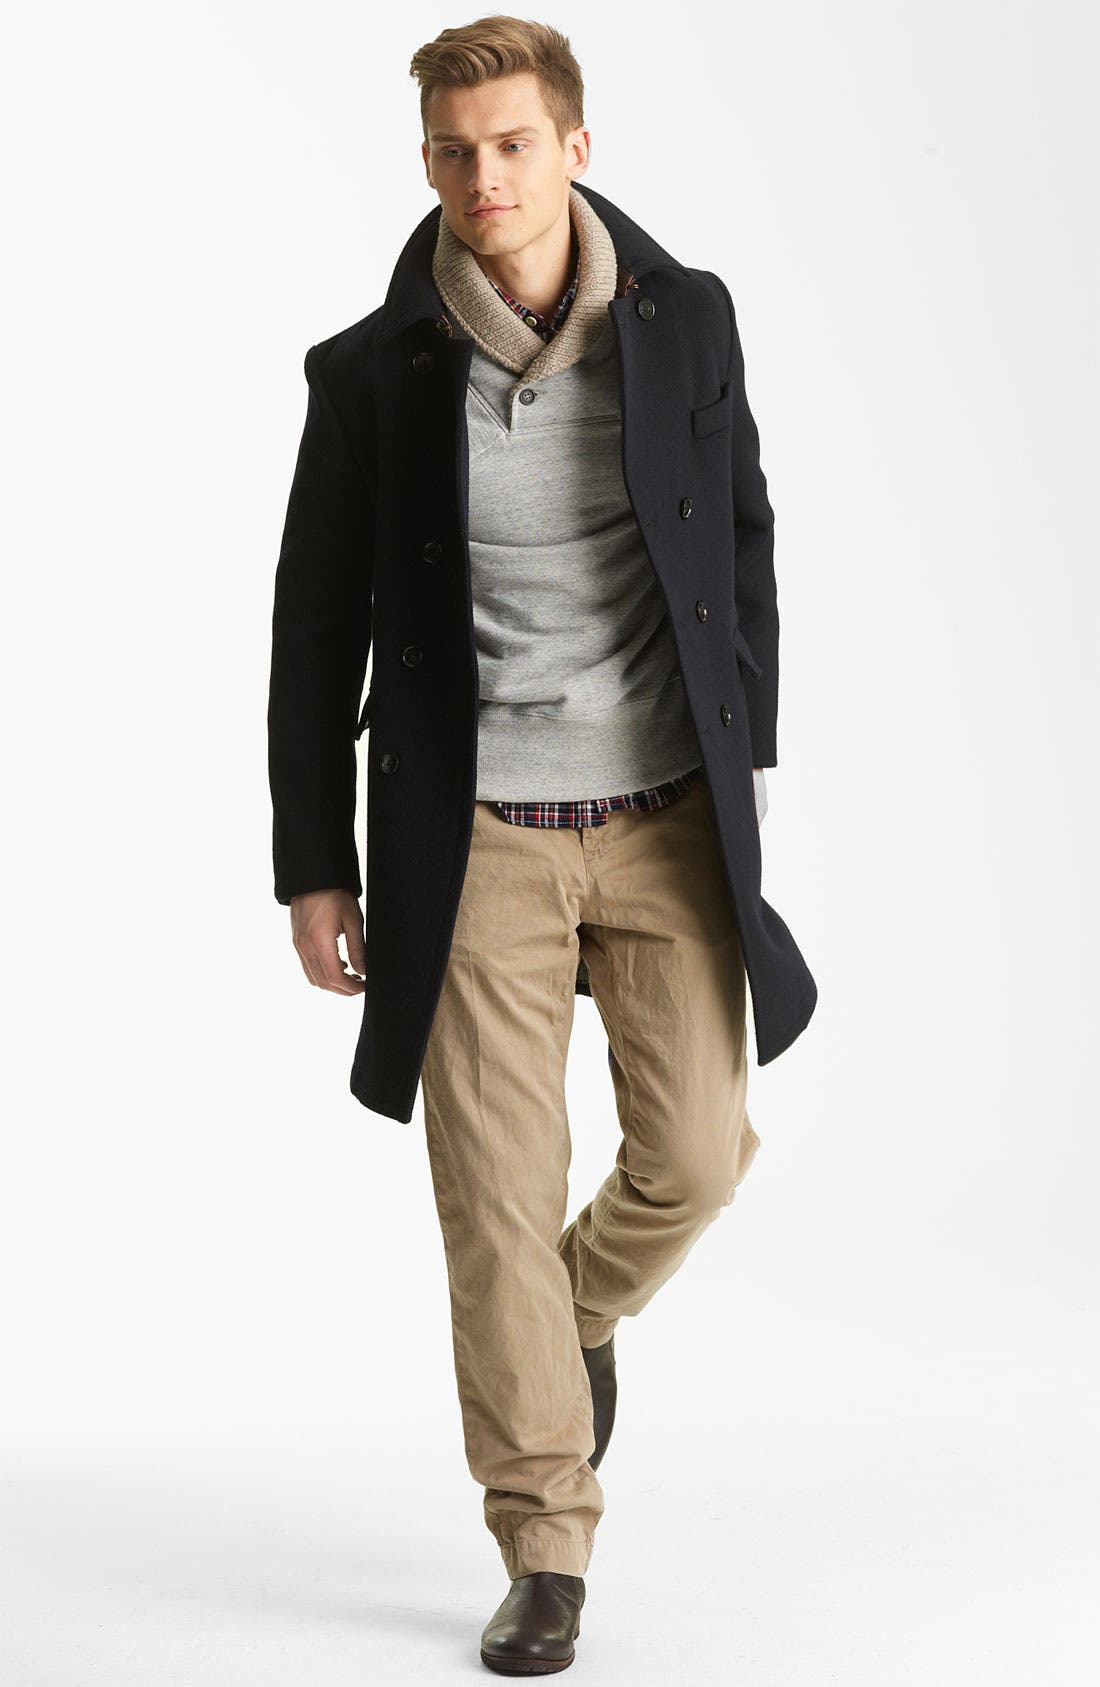 Main Image - Billy Reid Coat, Shawl Collar Sweatshirt, Woven Shirt & Mason's Pants